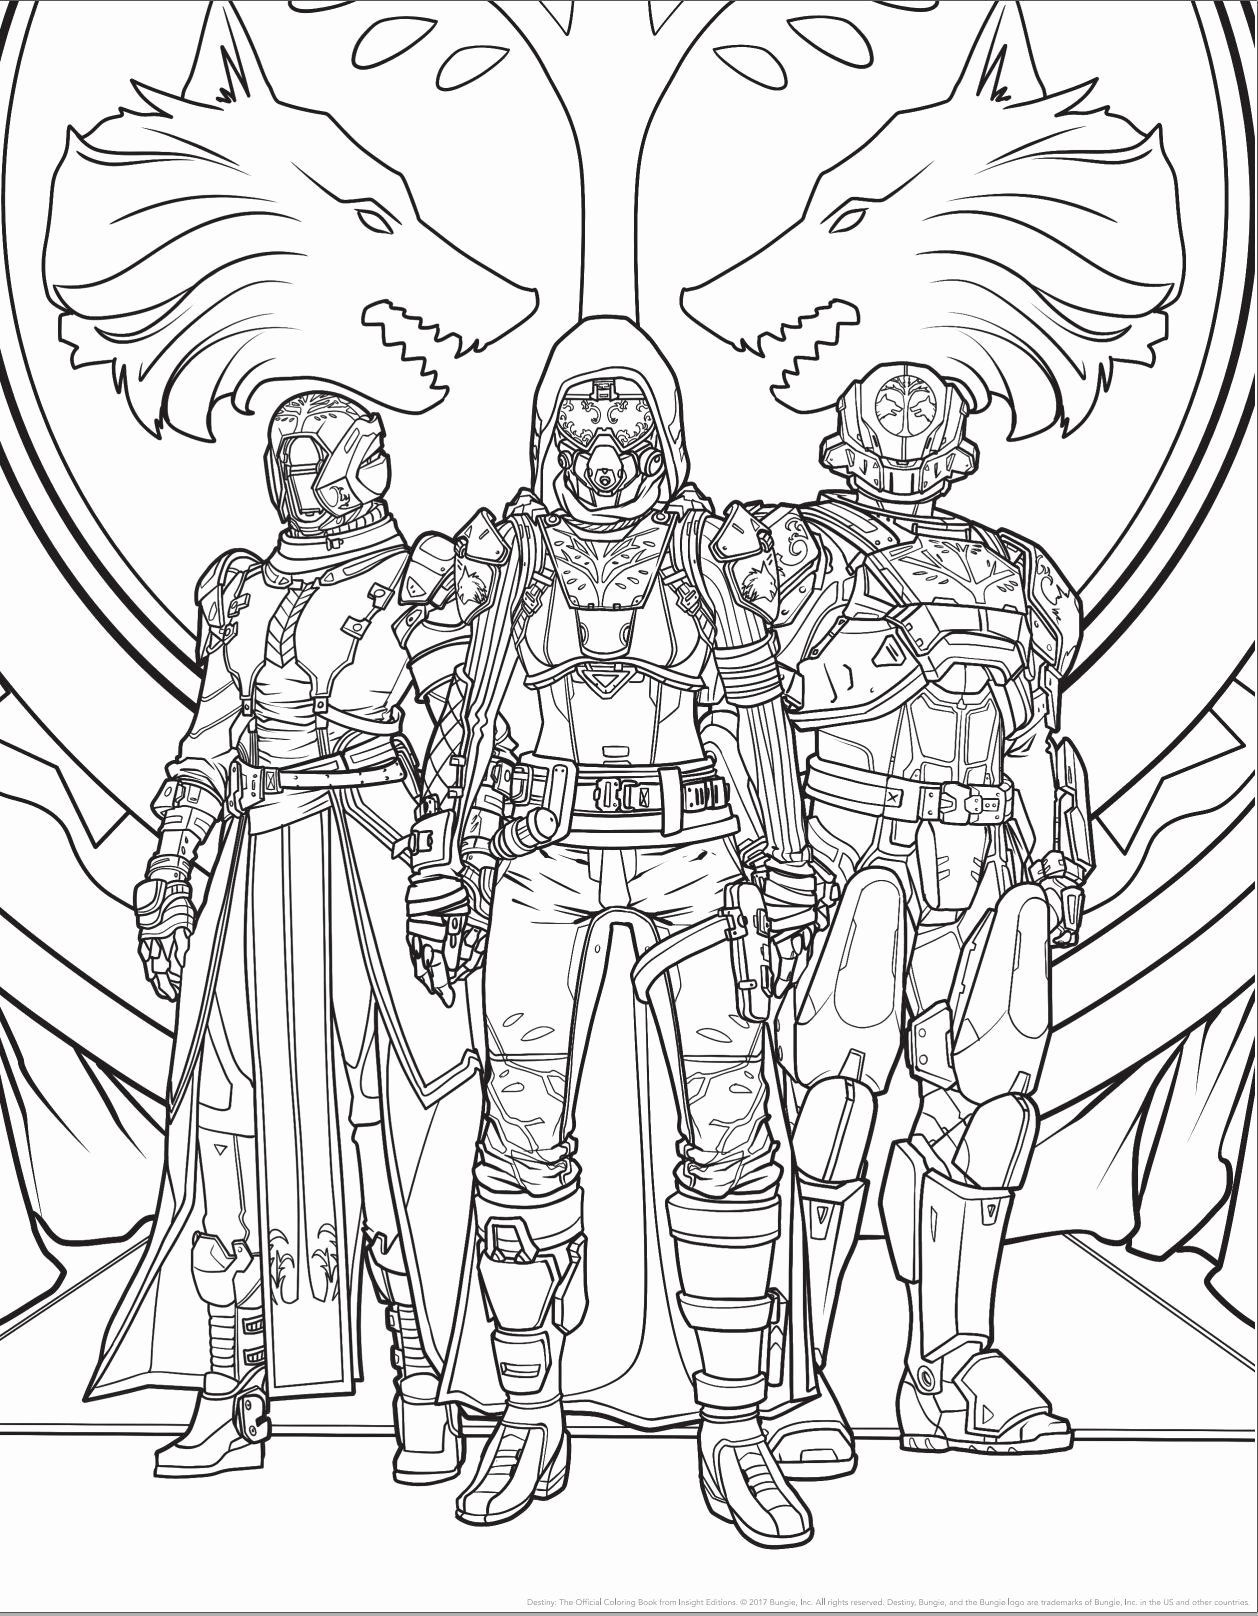 Destiny 2 Coloring Pages Elegant Ahead Destiny 2 S Release An Ficial Destiny Coloring Book Is Ing Games Coloring Pages Pusheen Coloring Pages Cat Coloring Page